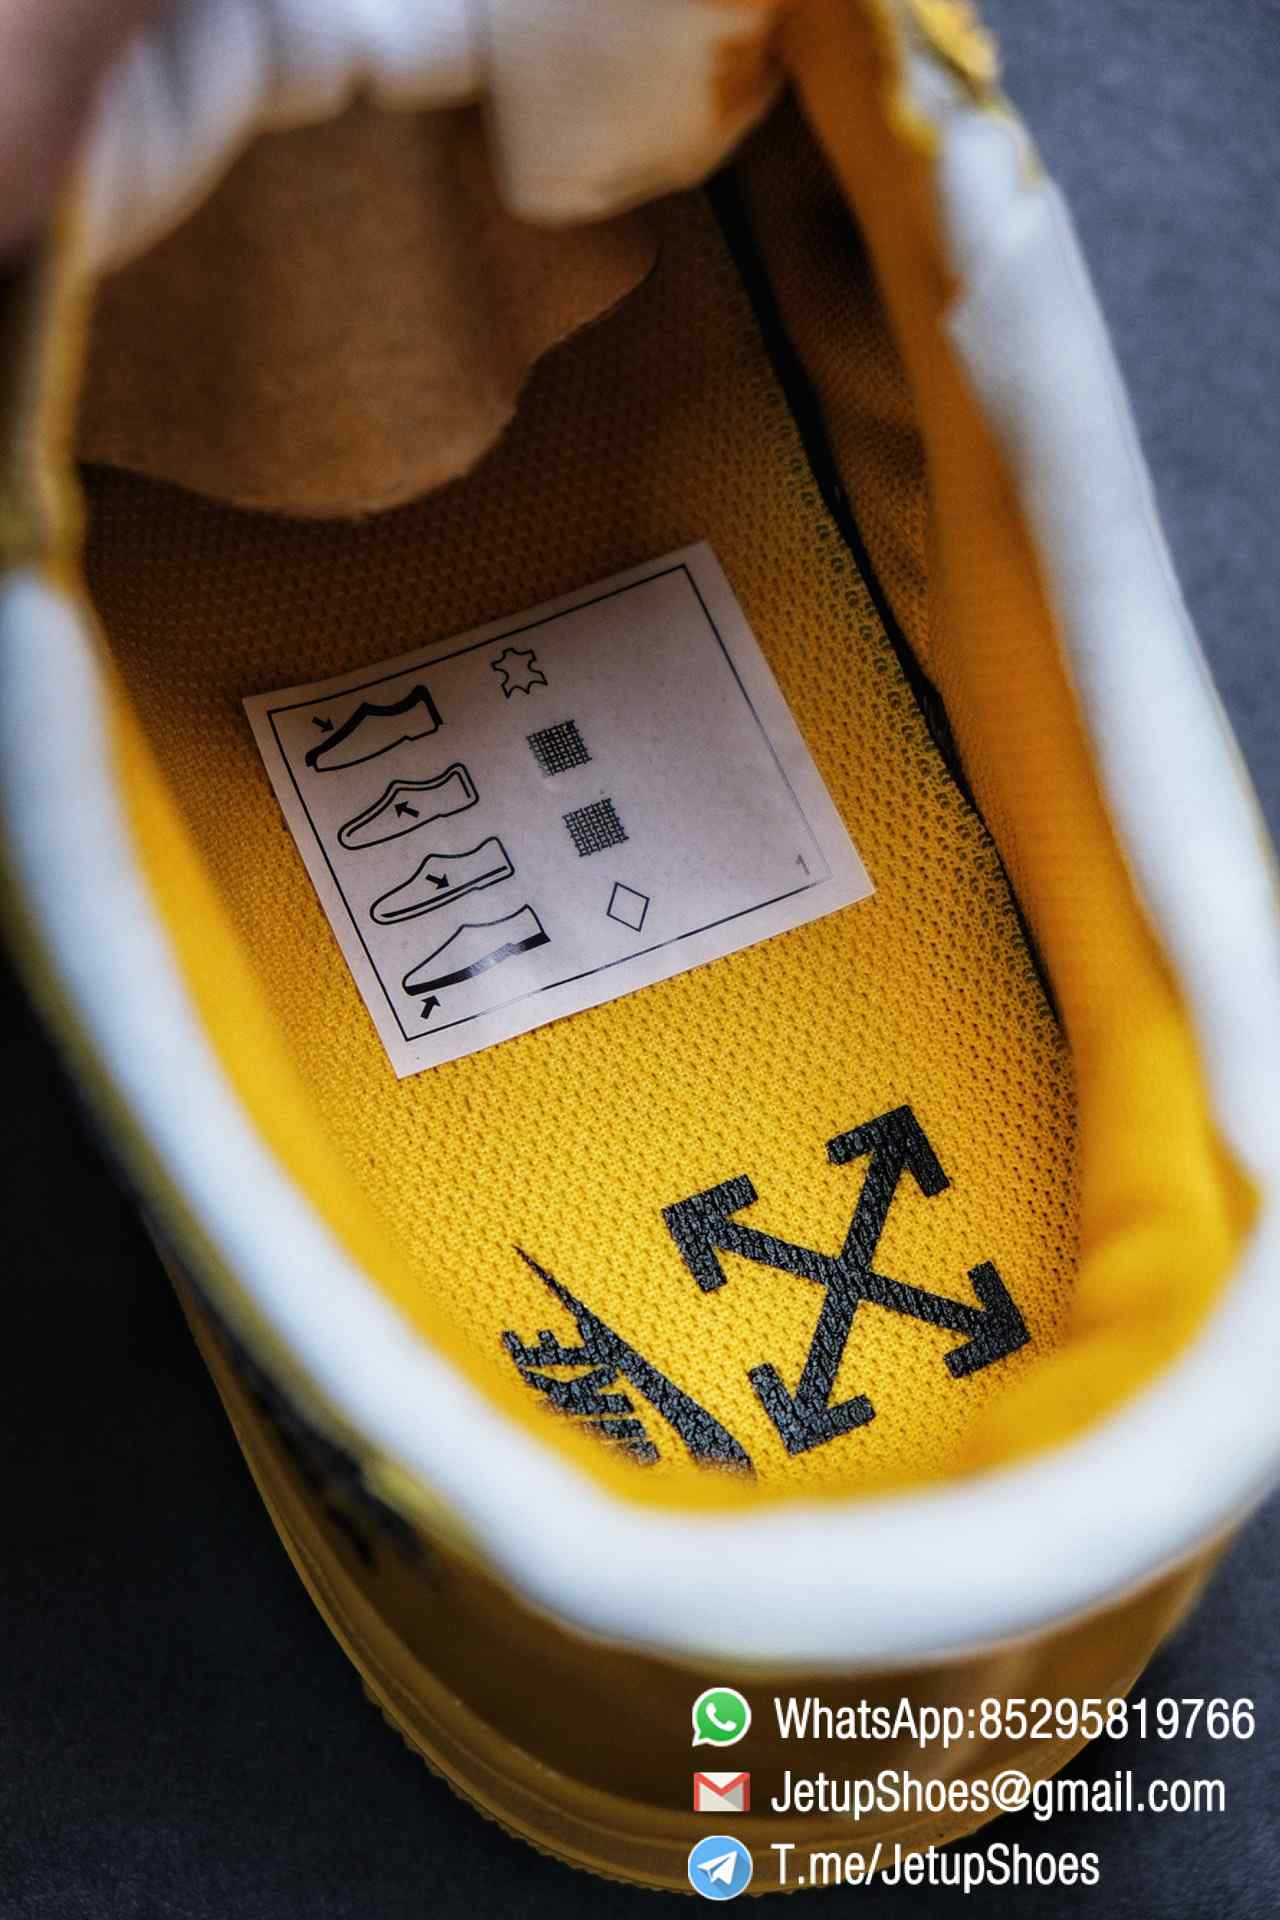 Best Replica Sneakers Off White x Air Force 1 Low University Gold SKU DD1876 700 Top Quality Basketball Shoes 017